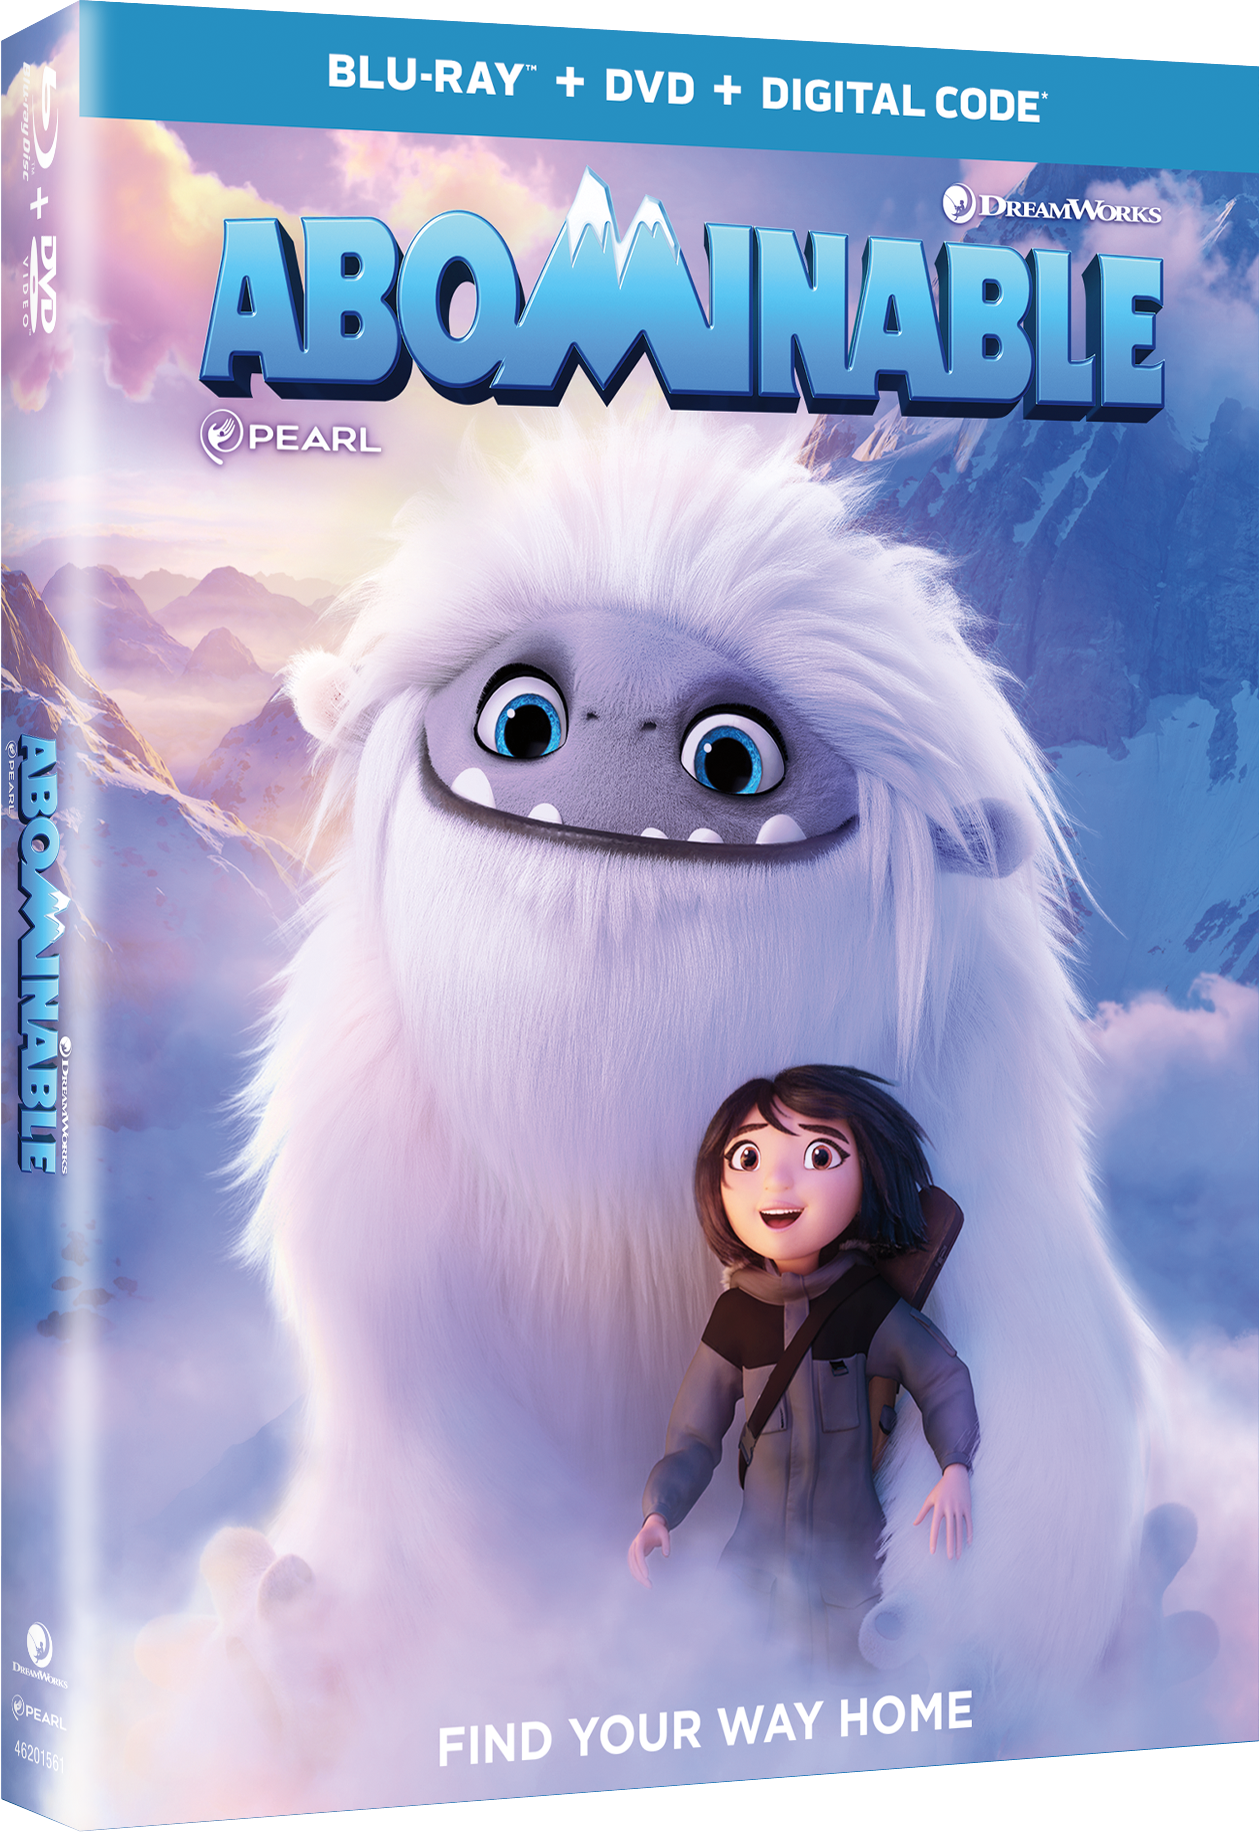 Abominable DVD Blu-ray Movie